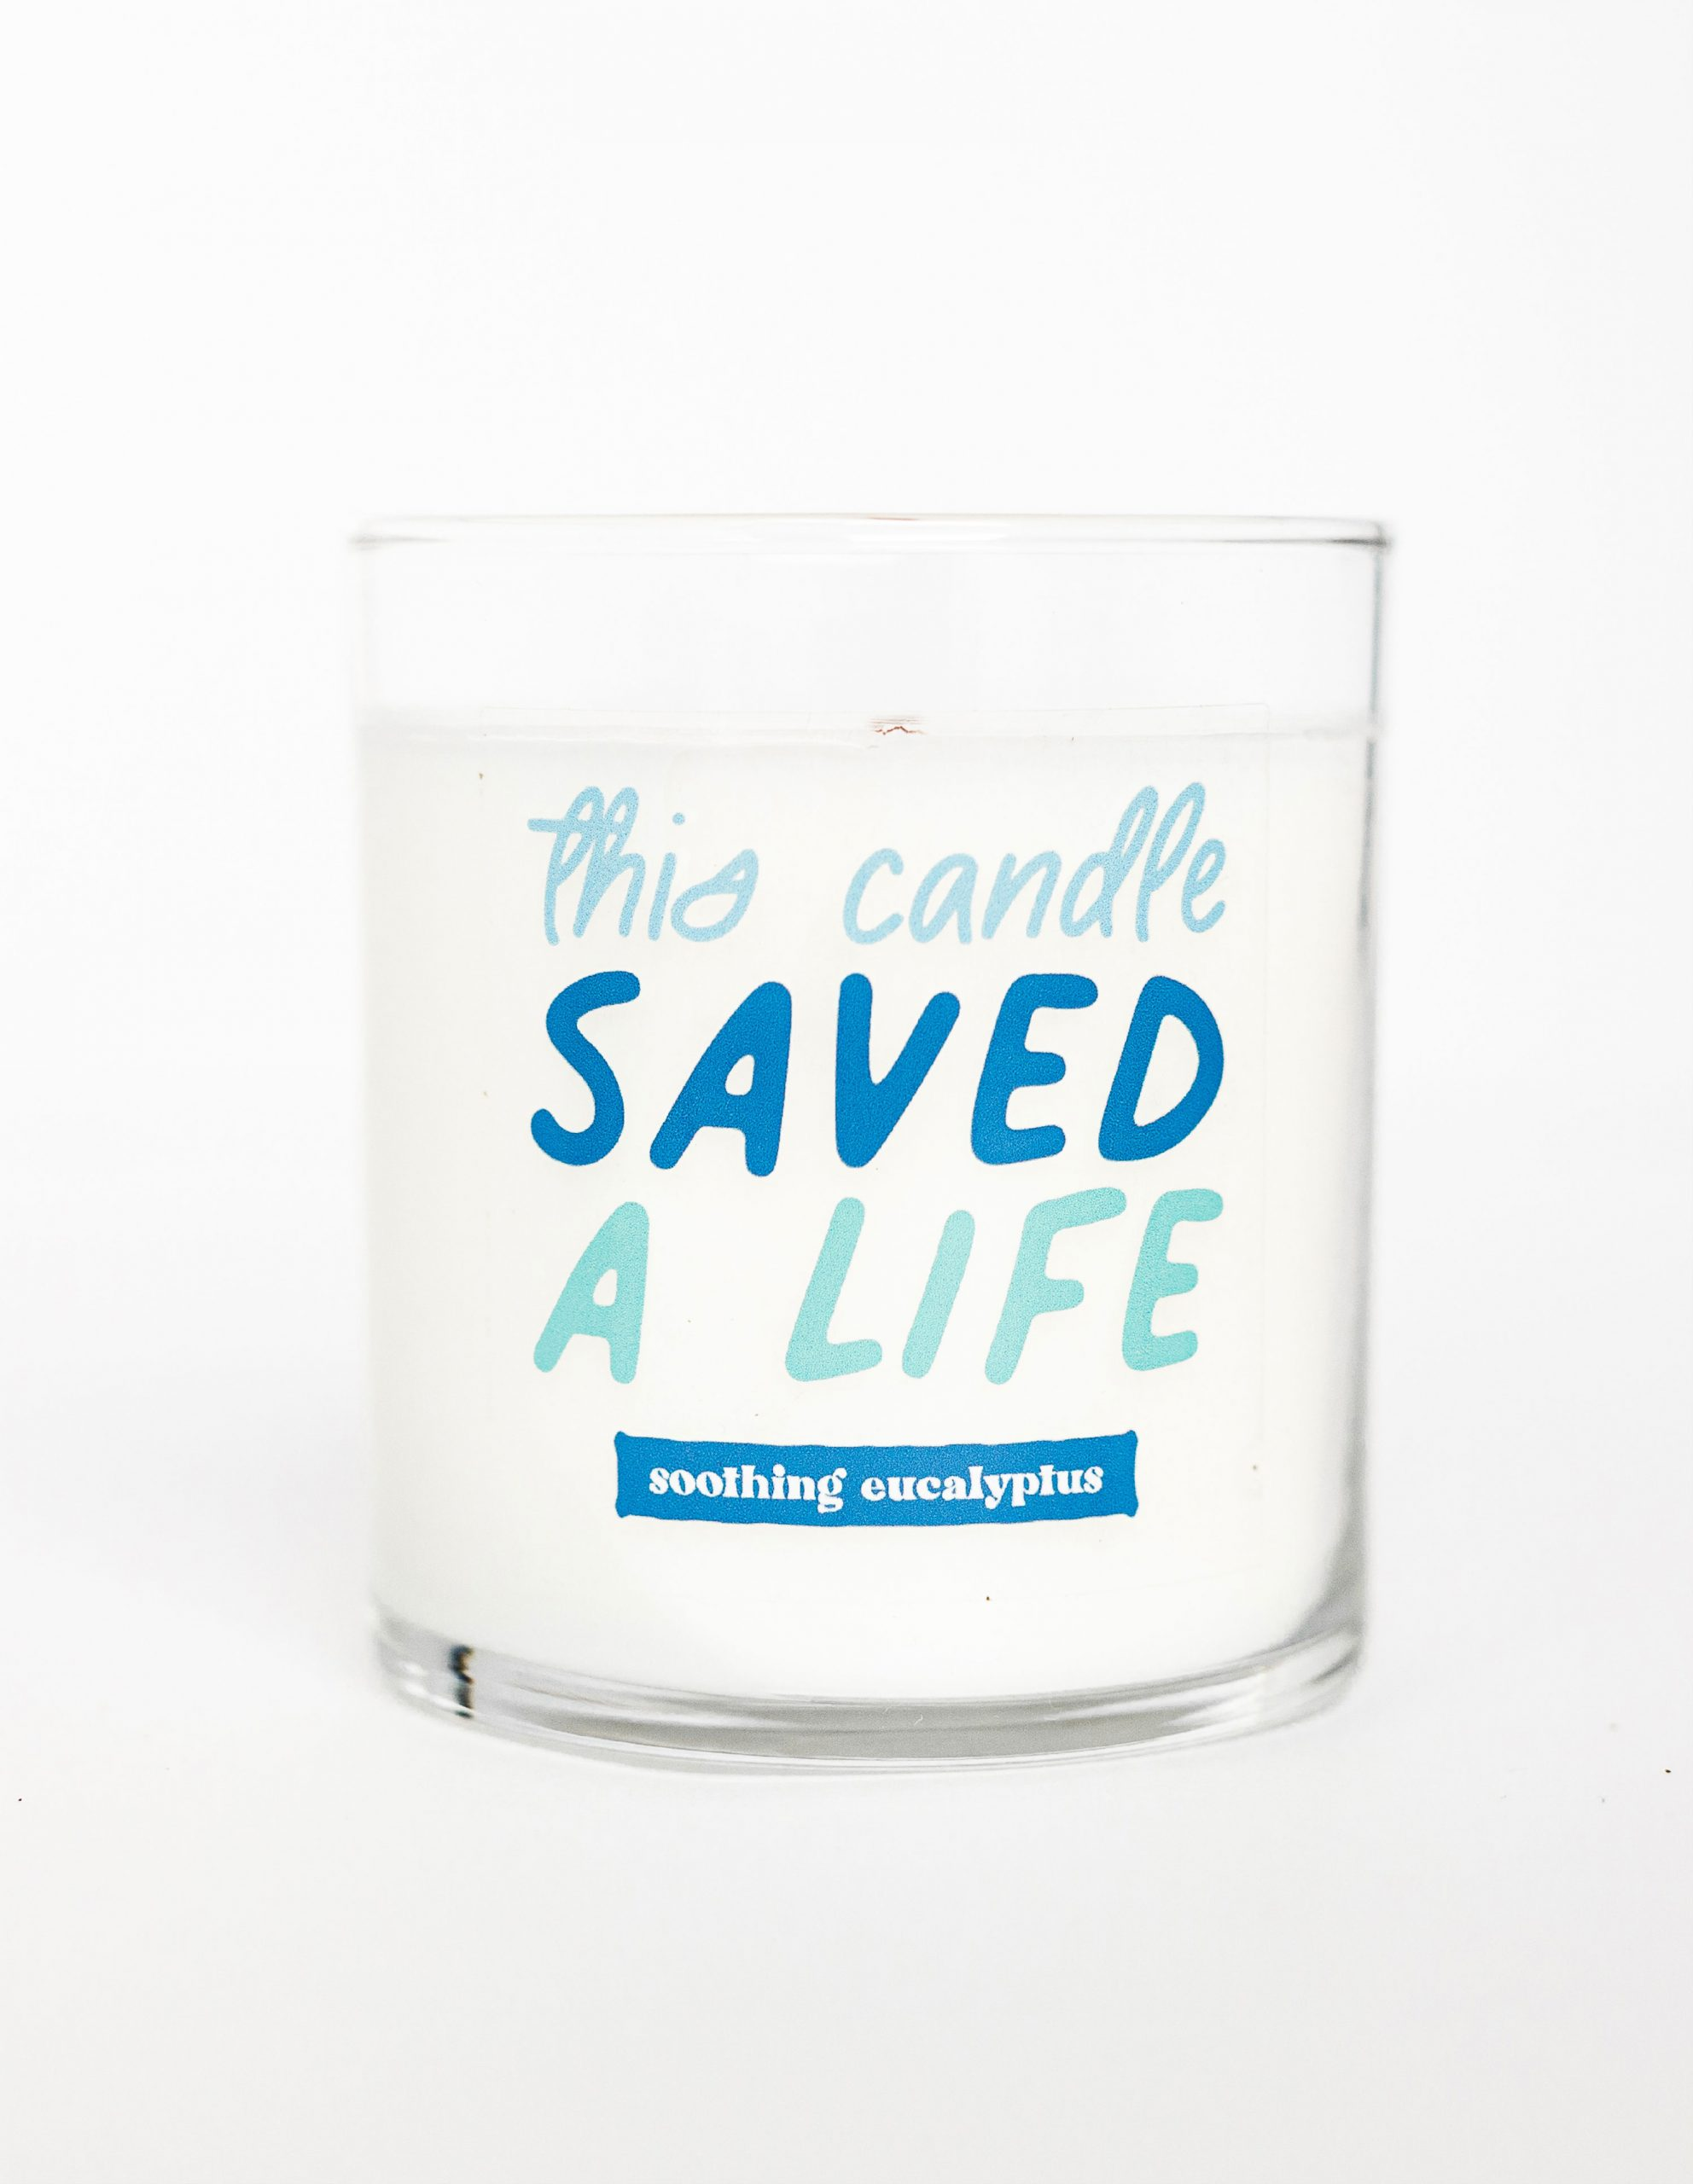 candle with This Candle Saved a Life printed on it